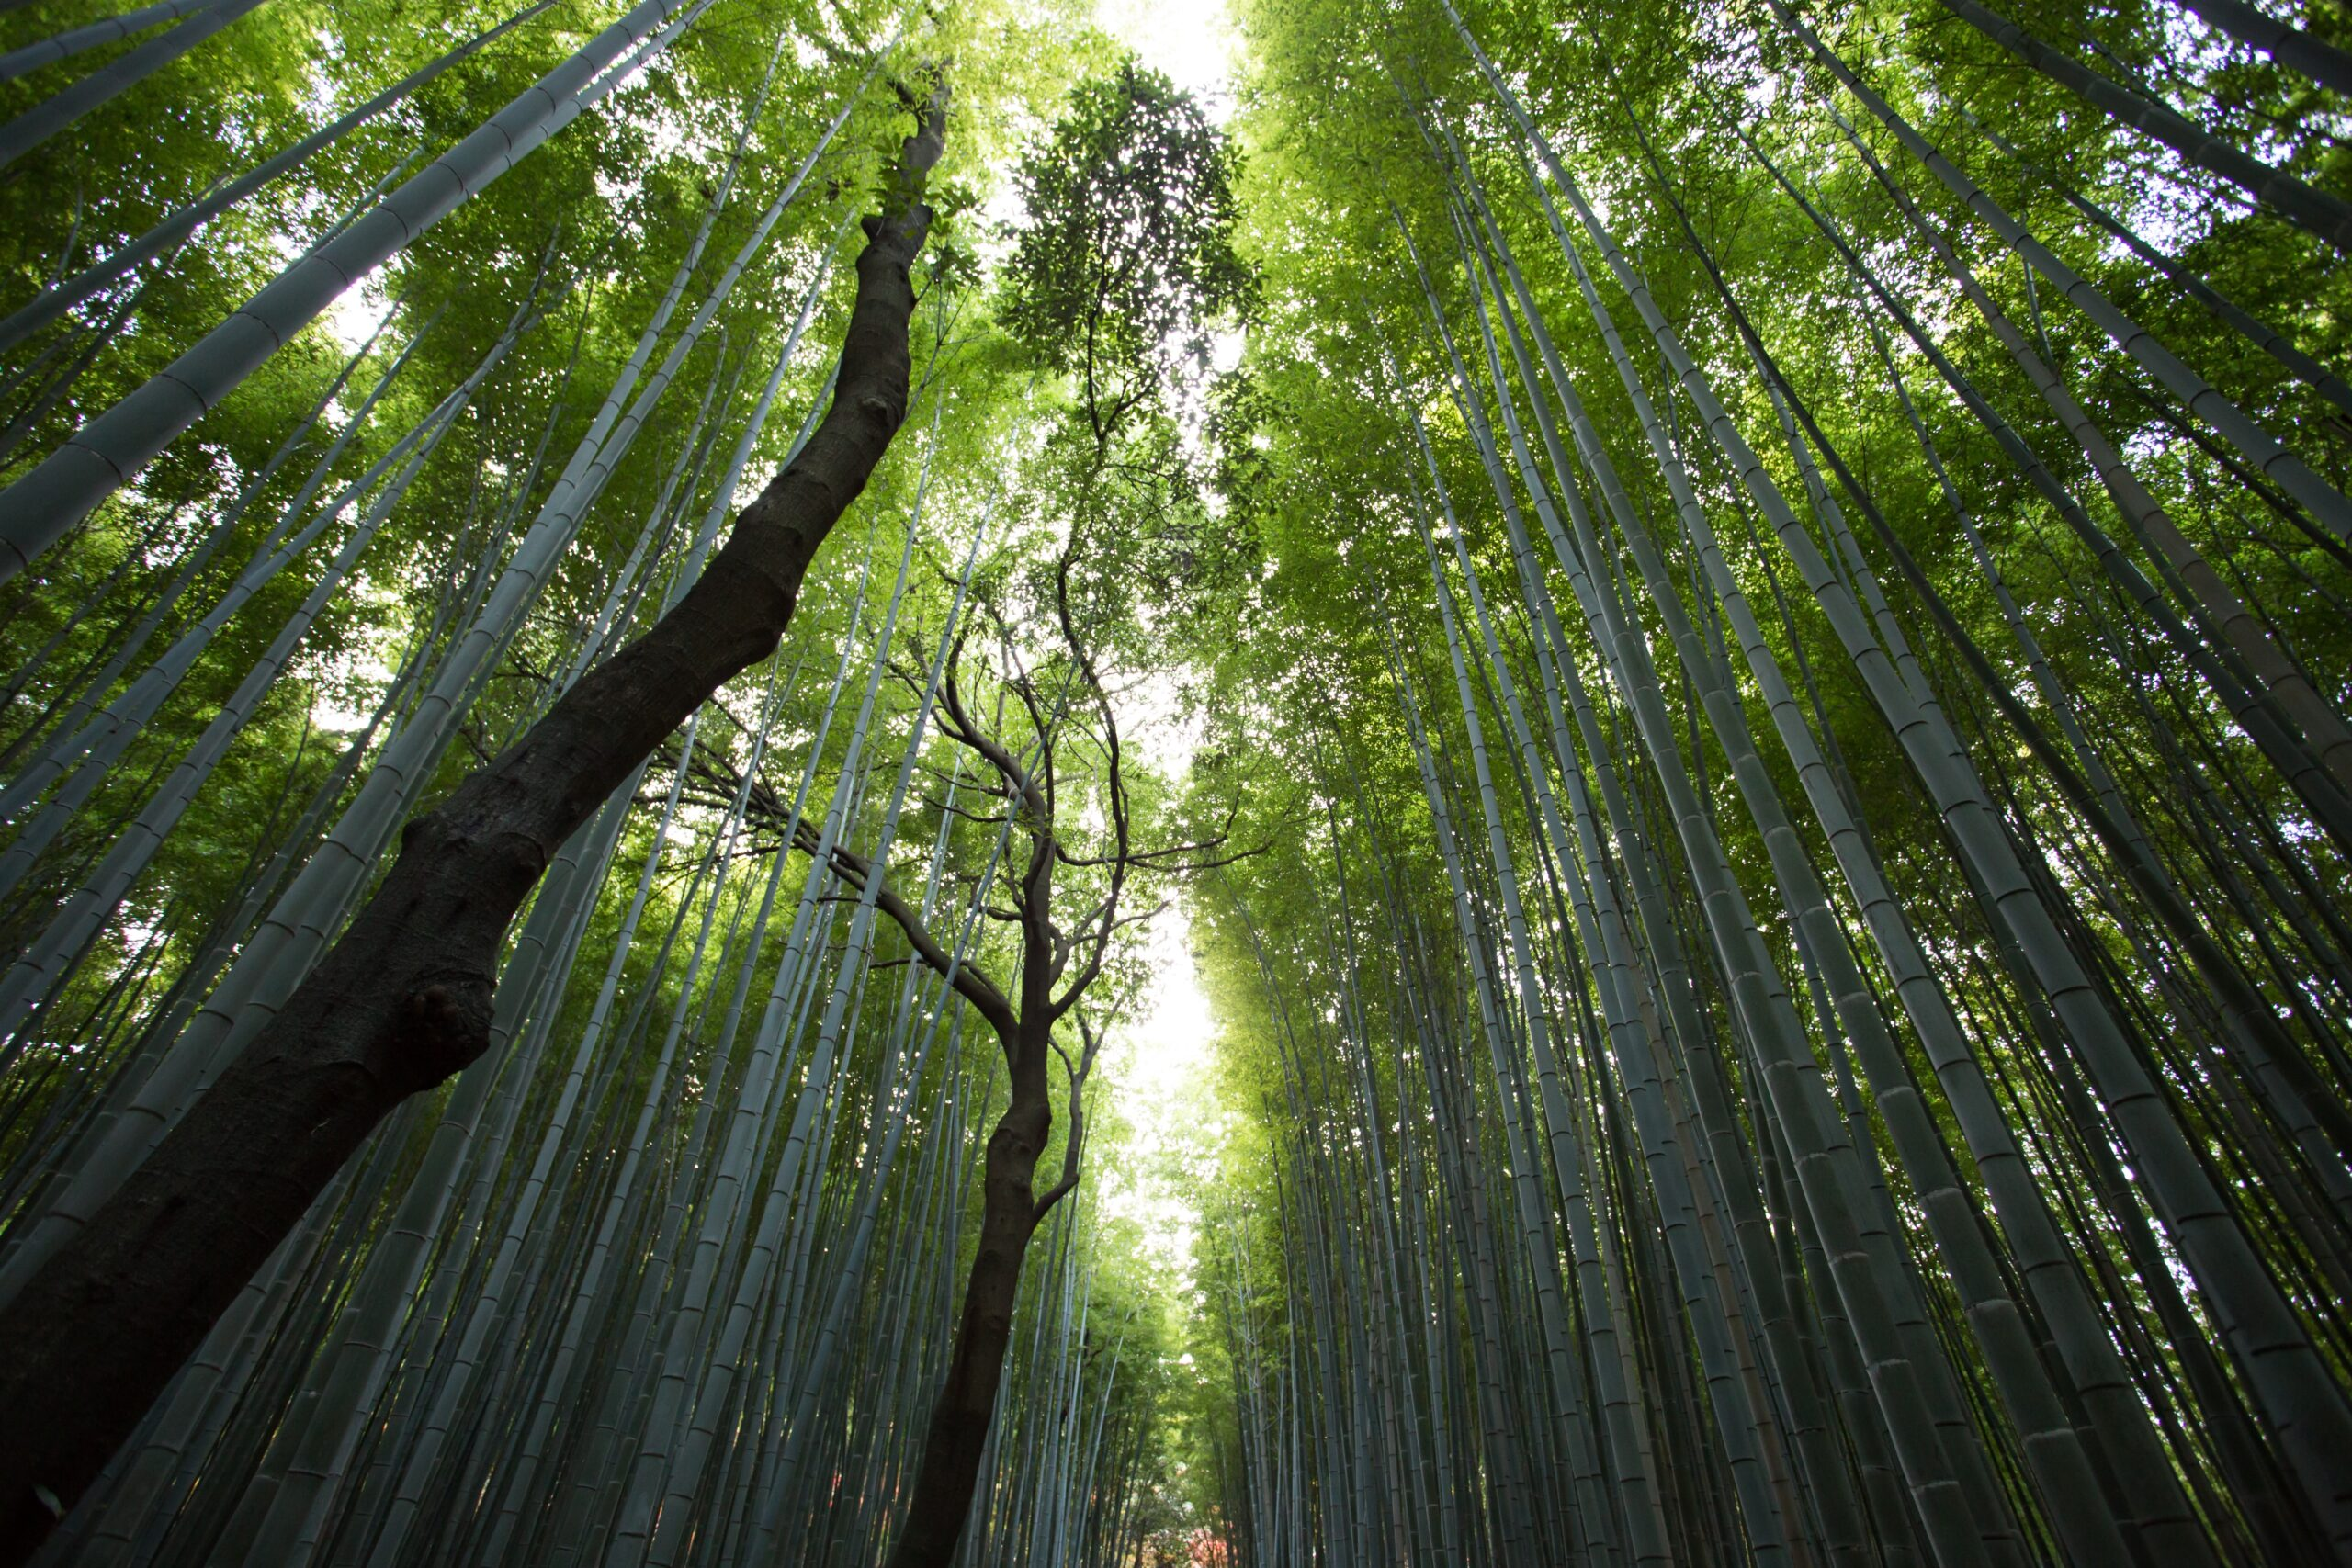 Photo of a bamboo forest and its canopy by Jason Ortego on Unsplash